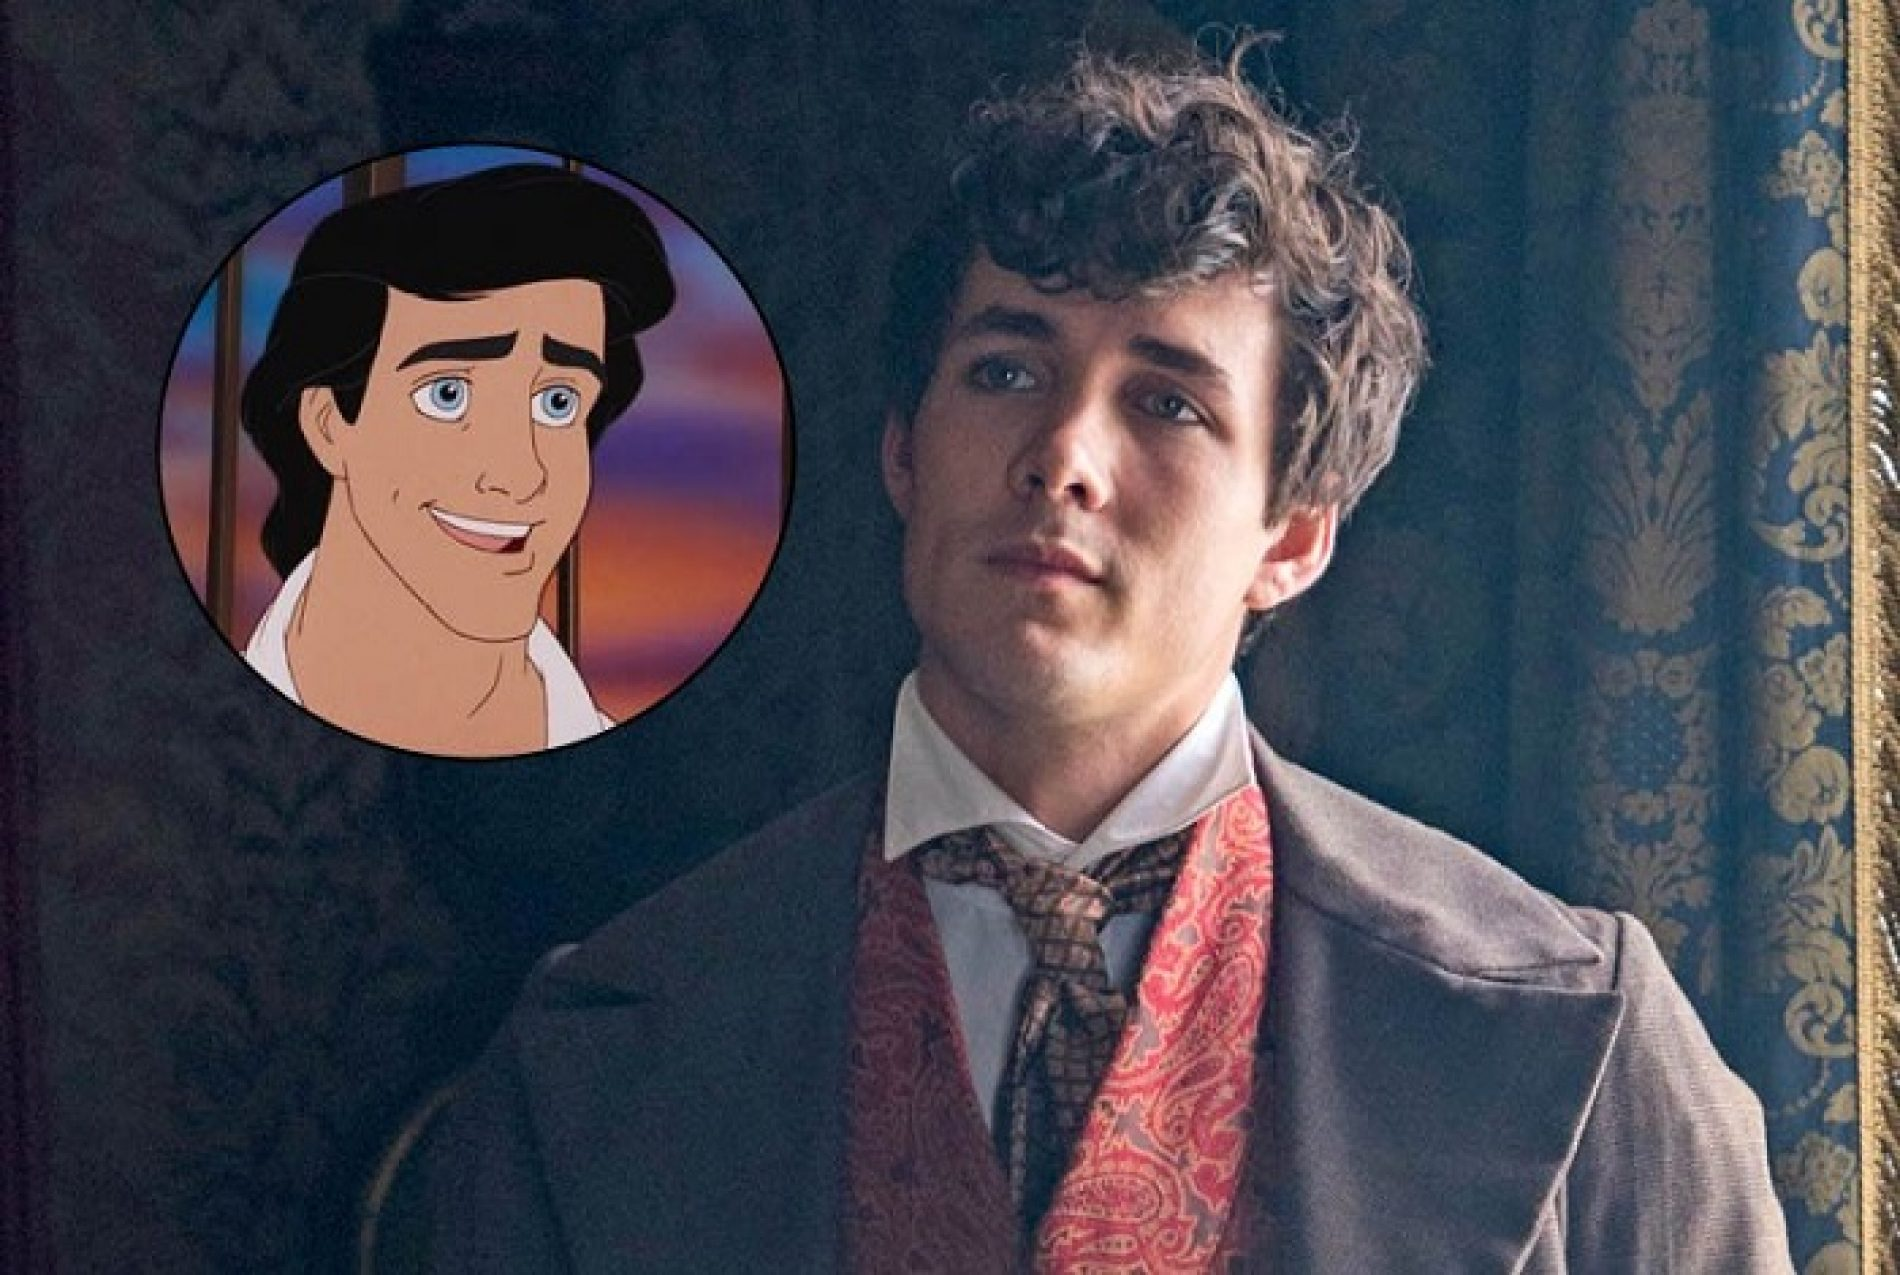 The Live-Action Little Mermaid Has Finally Found Its Prince Eric